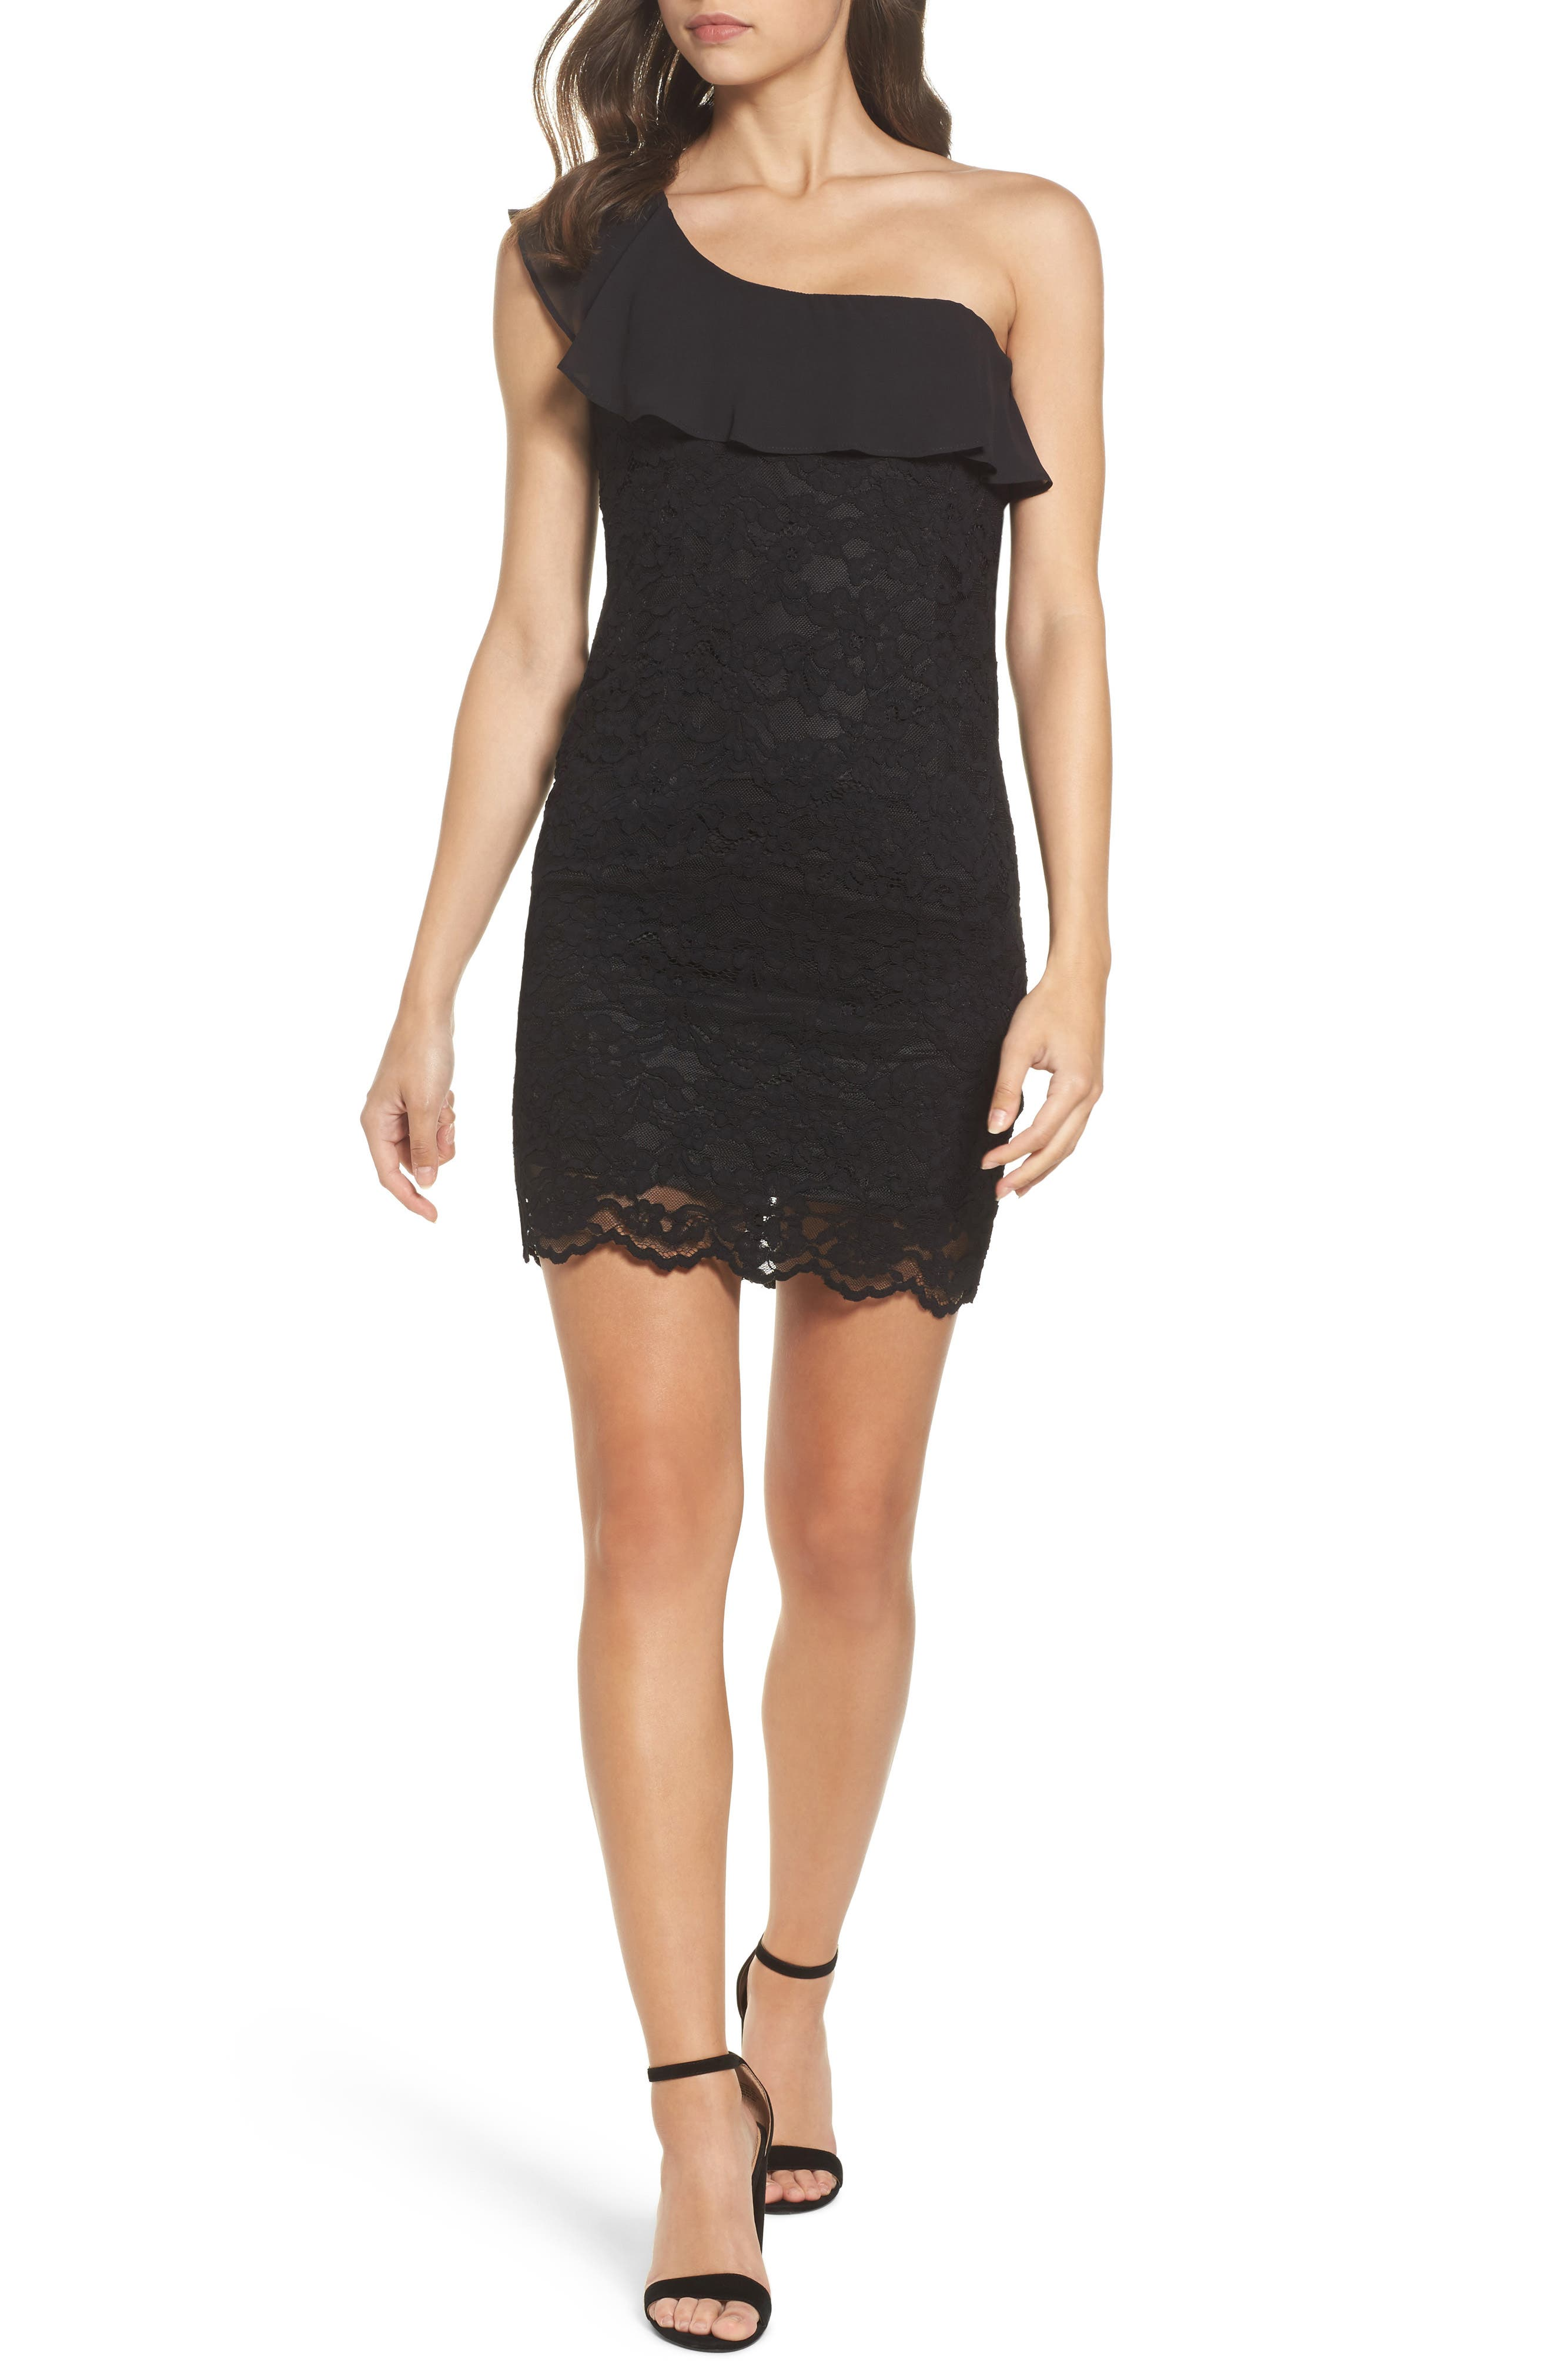 Main Image - Bardot Fiorella One-Shoulder Lace Body-Con Dress